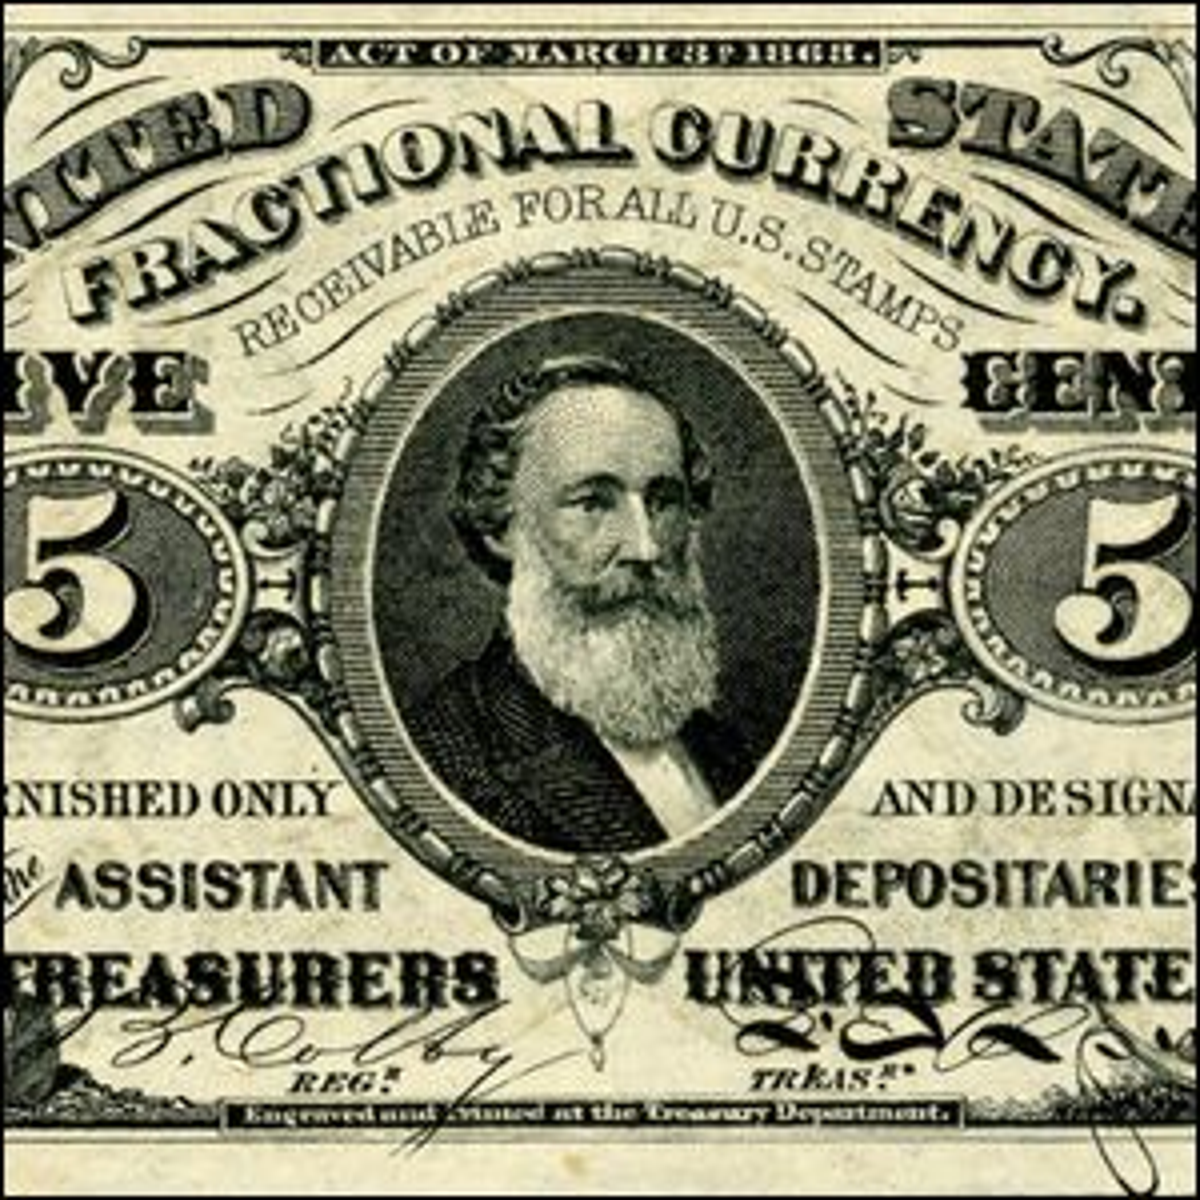 A 5-cent note featuring Spencer M. Clark's face.